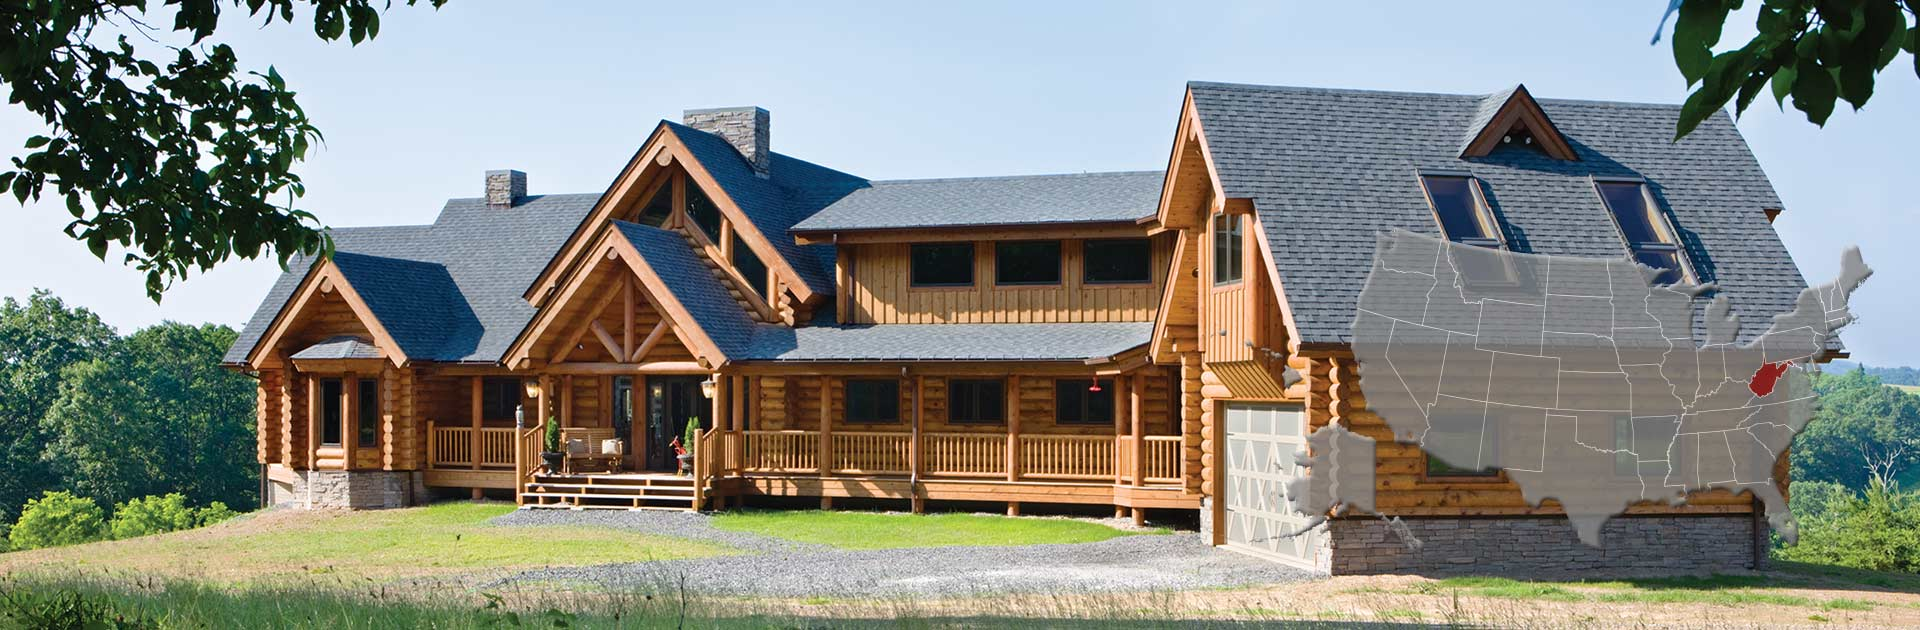 cabin a moon relaxing in blue vrbo va virginia west luray cabins get